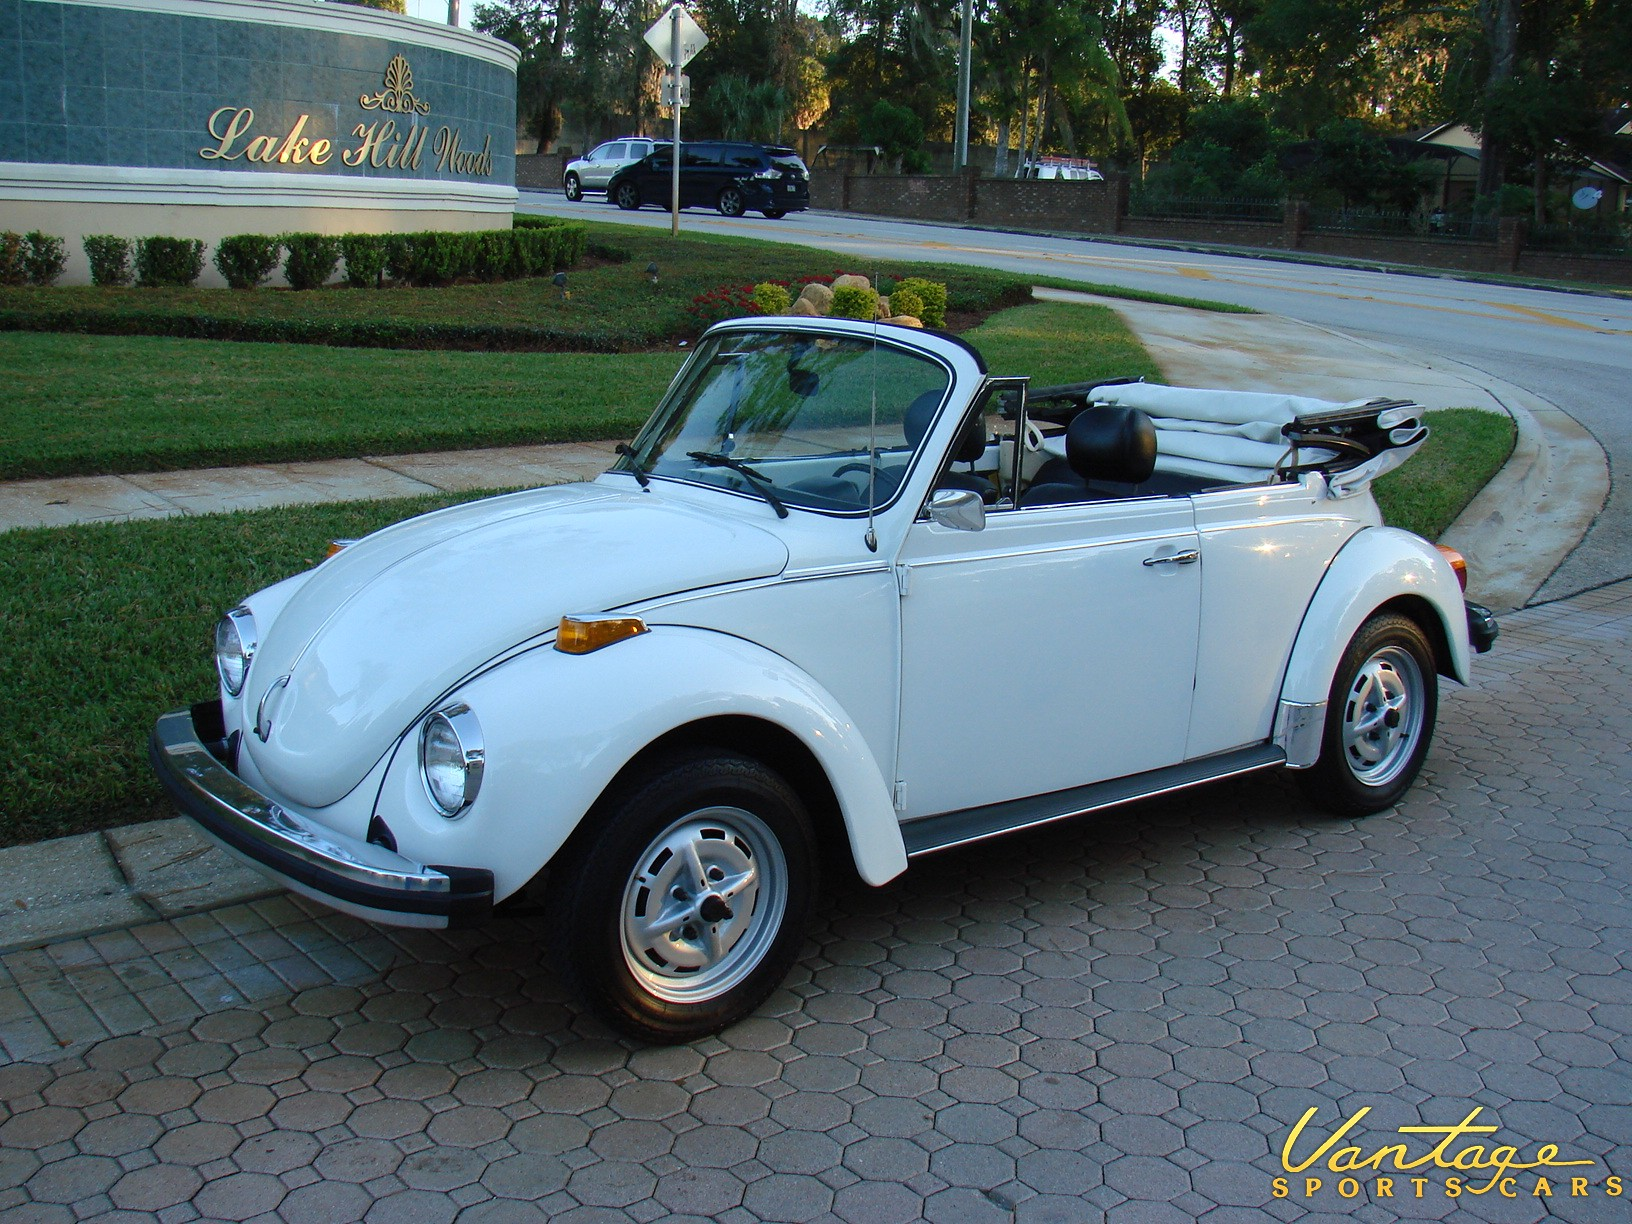 1978 Volkswagen Bug Convertible Sold Vantage Sports